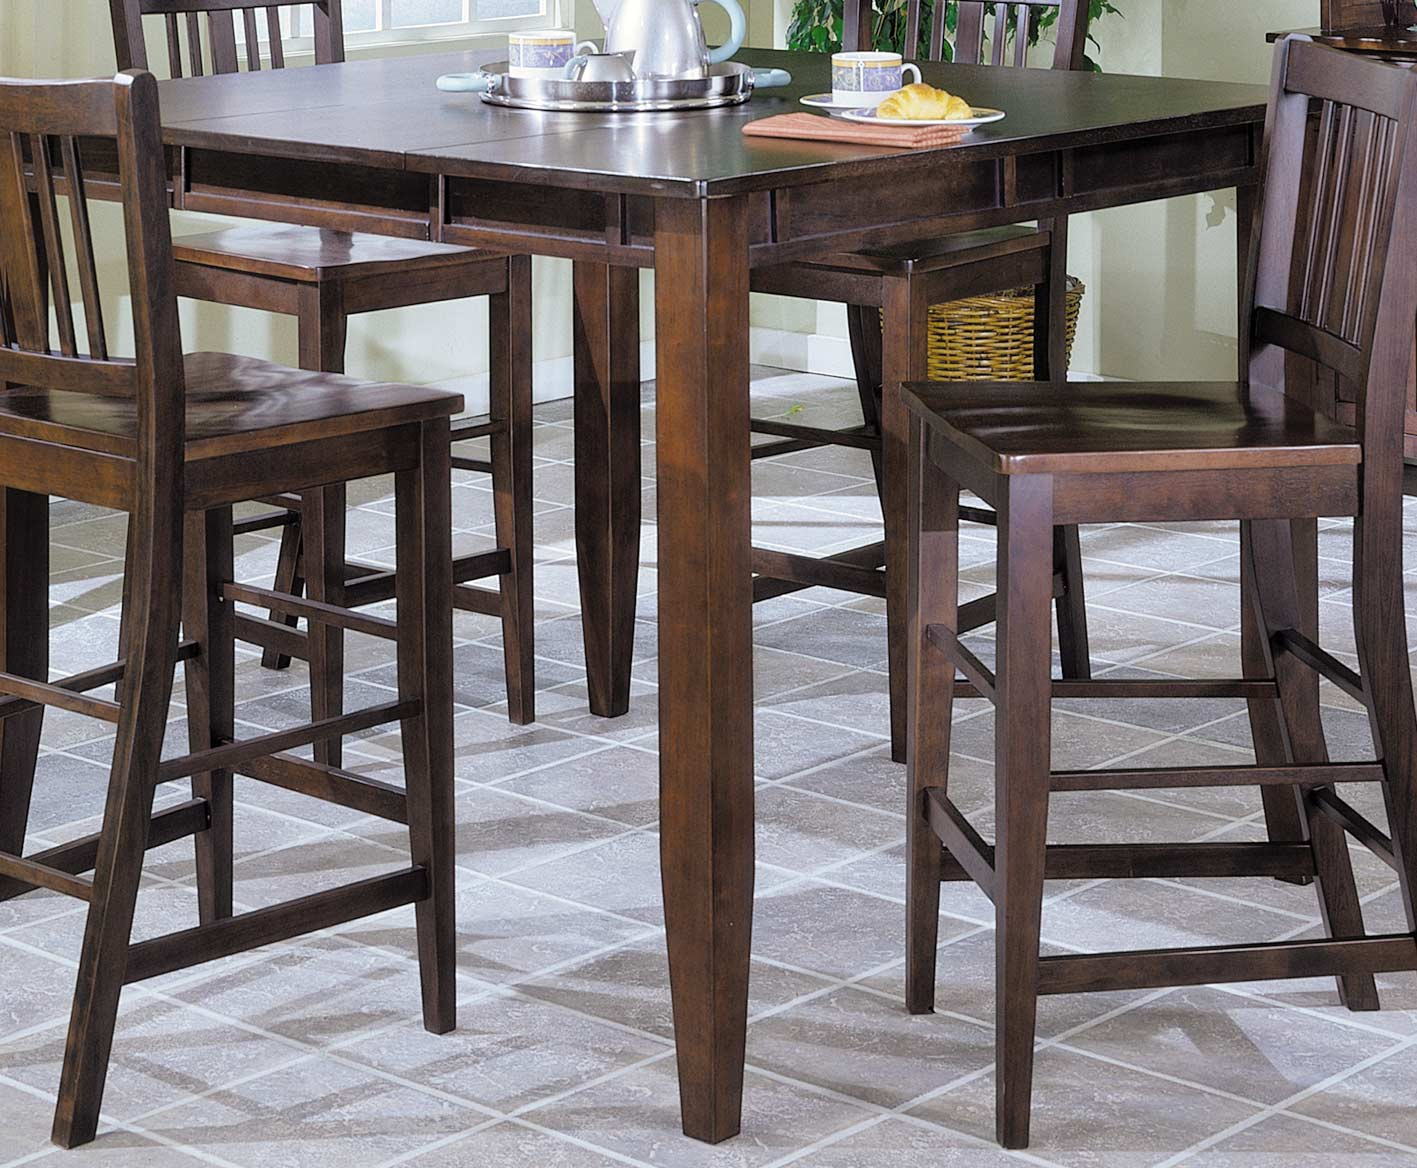 10 Superb Square Dining Table Ideas For A Contemporary: Homelegance Market Square Pub Dining Table Wth Butterfly